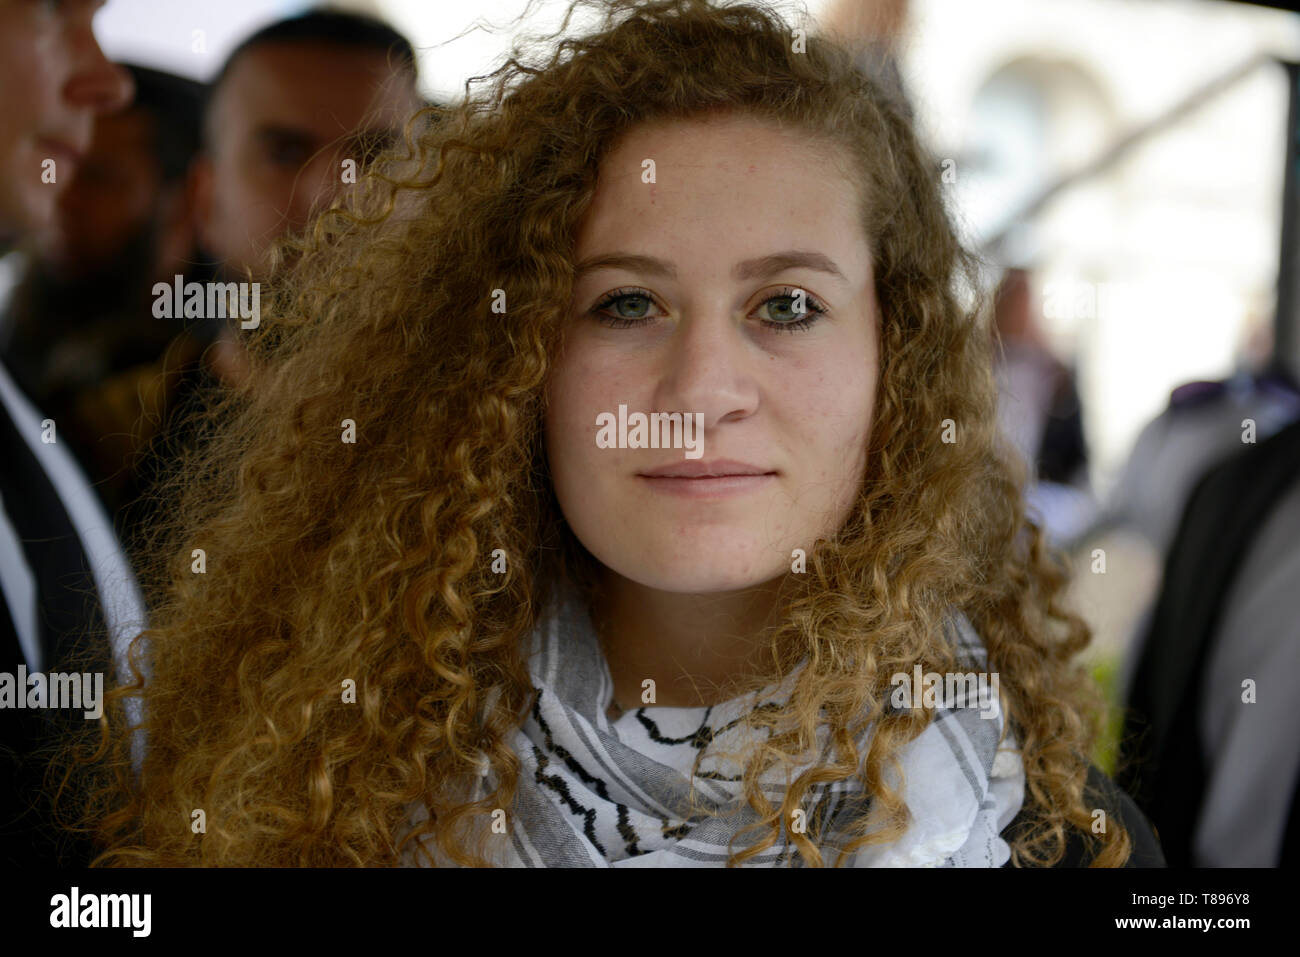 Palestinian human rights activist Ahed Tamimi seen taking